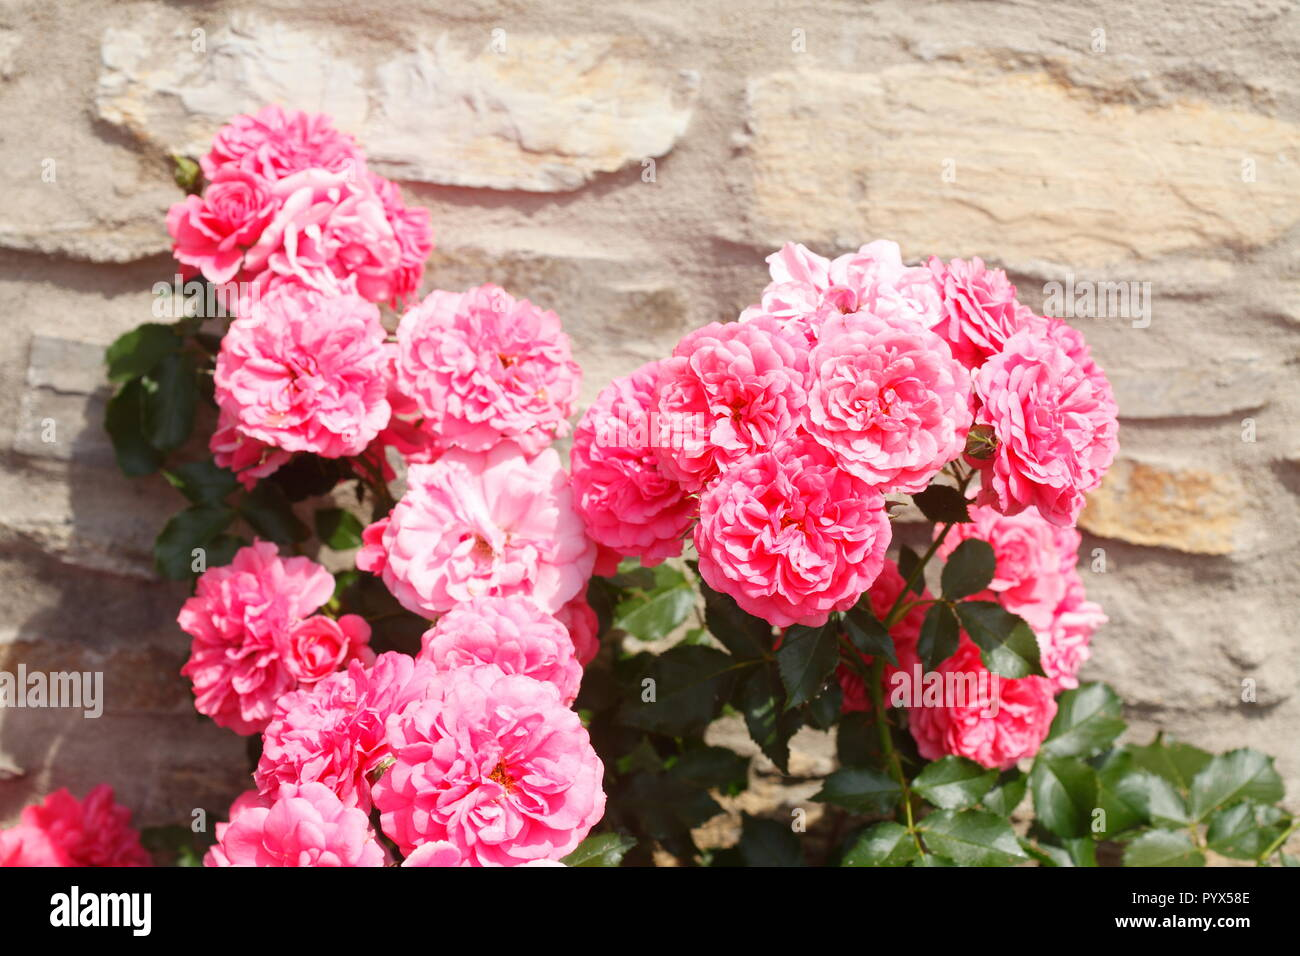 Pink roses in front of a stone wall, Germany, Europe Stock Photo